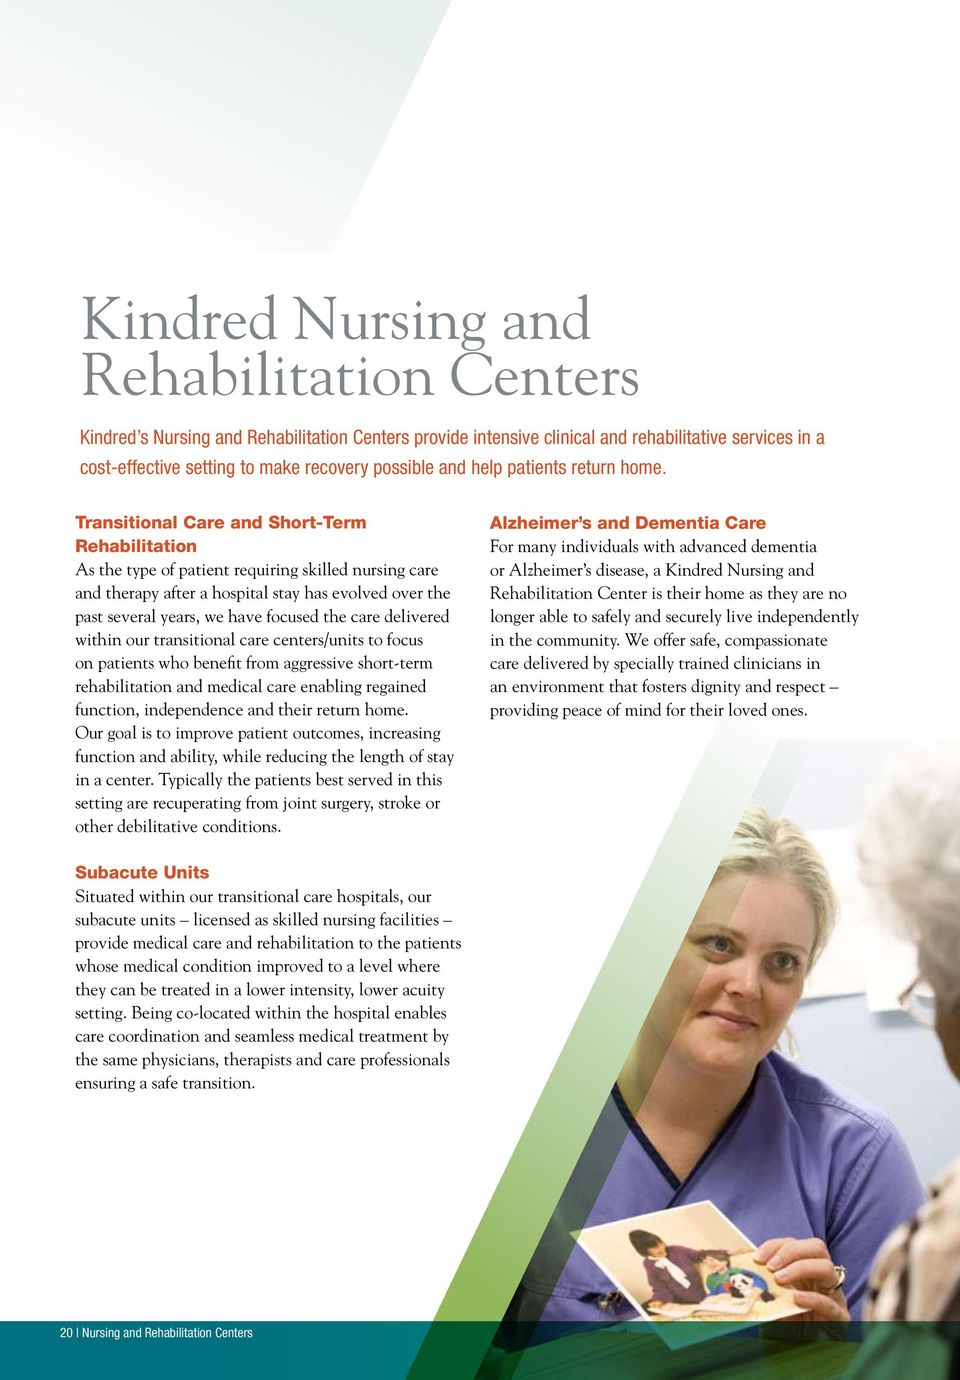 Transitional Care and Short-Term Rehabilitation As the type of patient requiring skilled nursing care and therapy after a hospital stay has evolved over the past several years, we have focused the